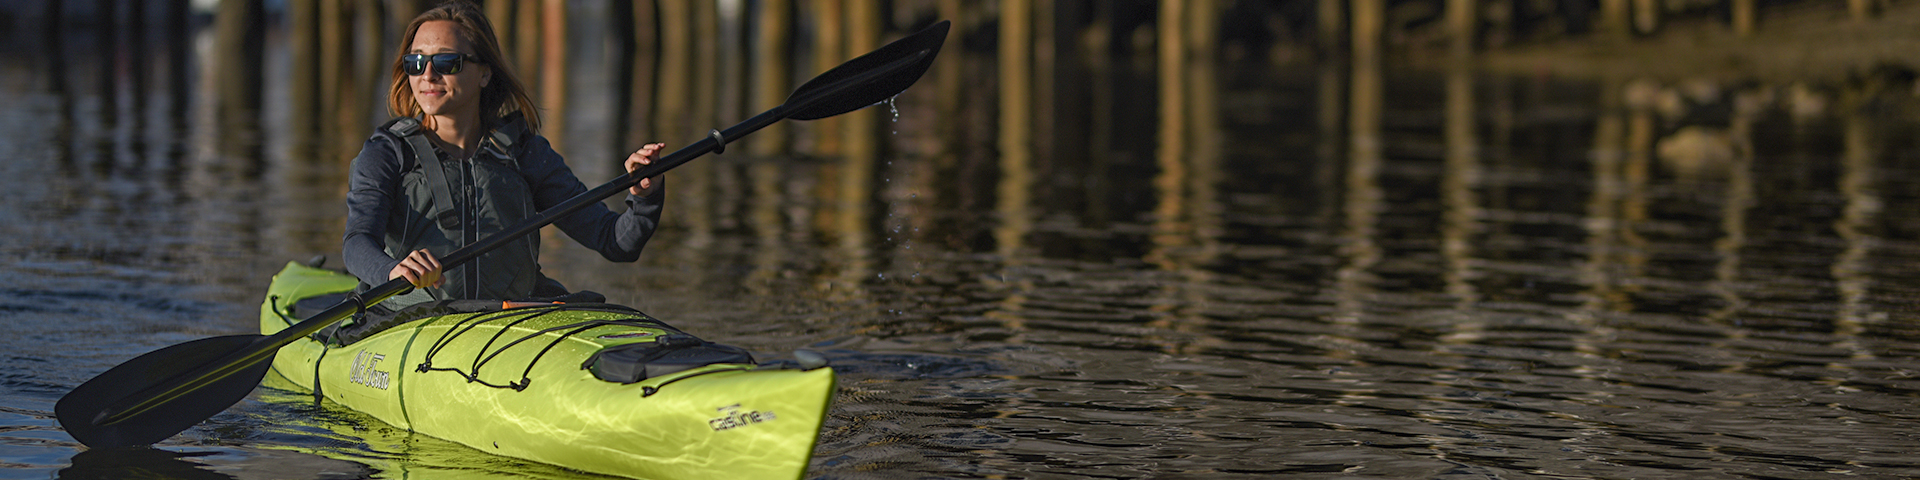 Kayaks: Castine 135 by Old Town Canoes and Kayaks - Image 2774